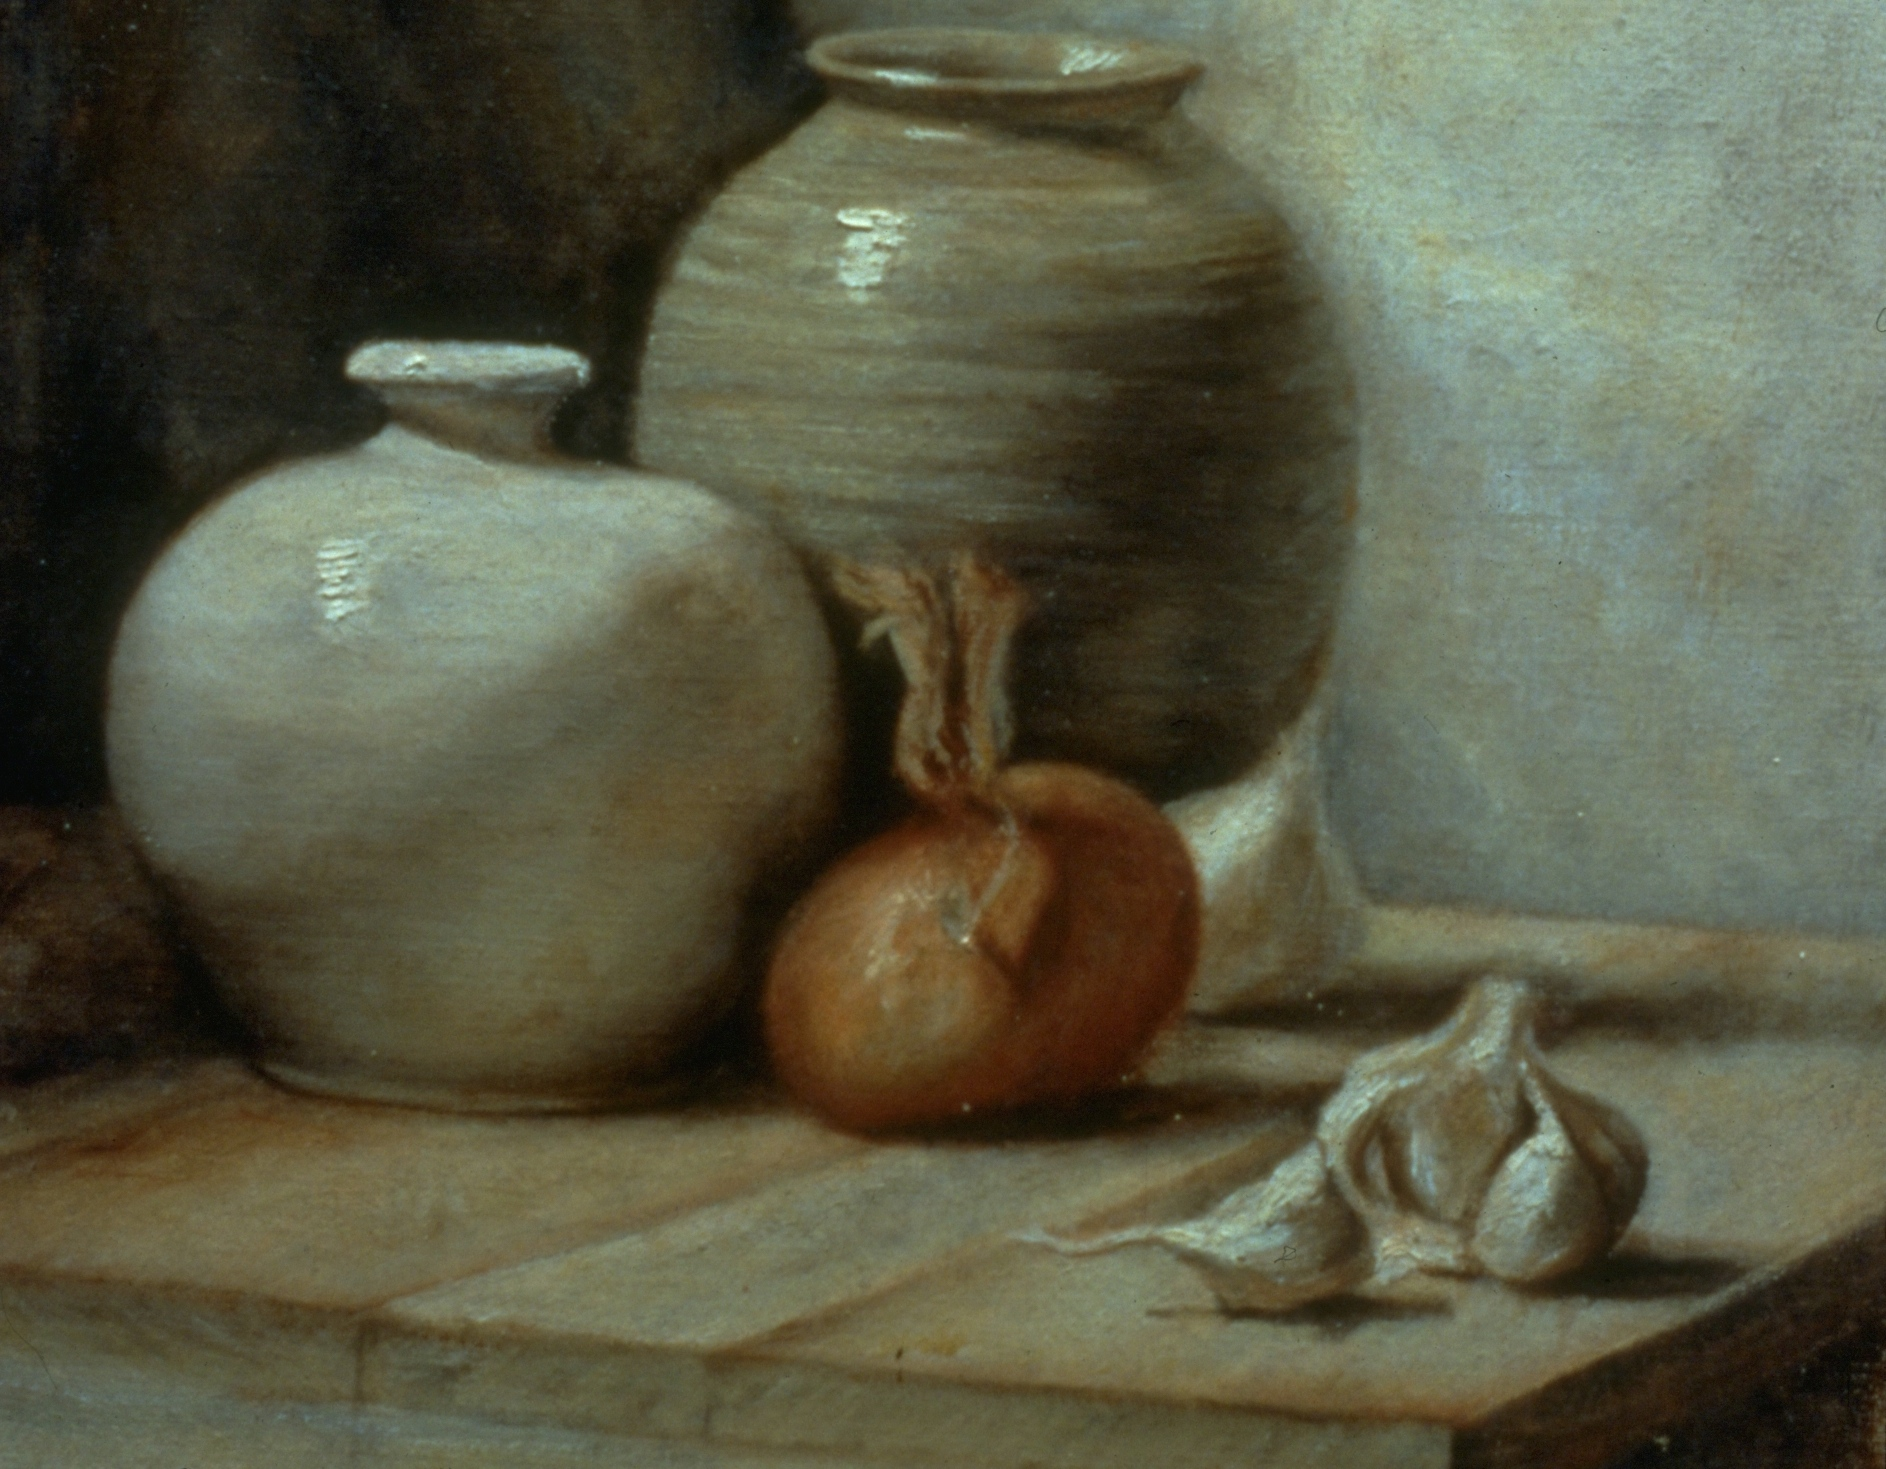 Two Vases, An Onion and A Garlic